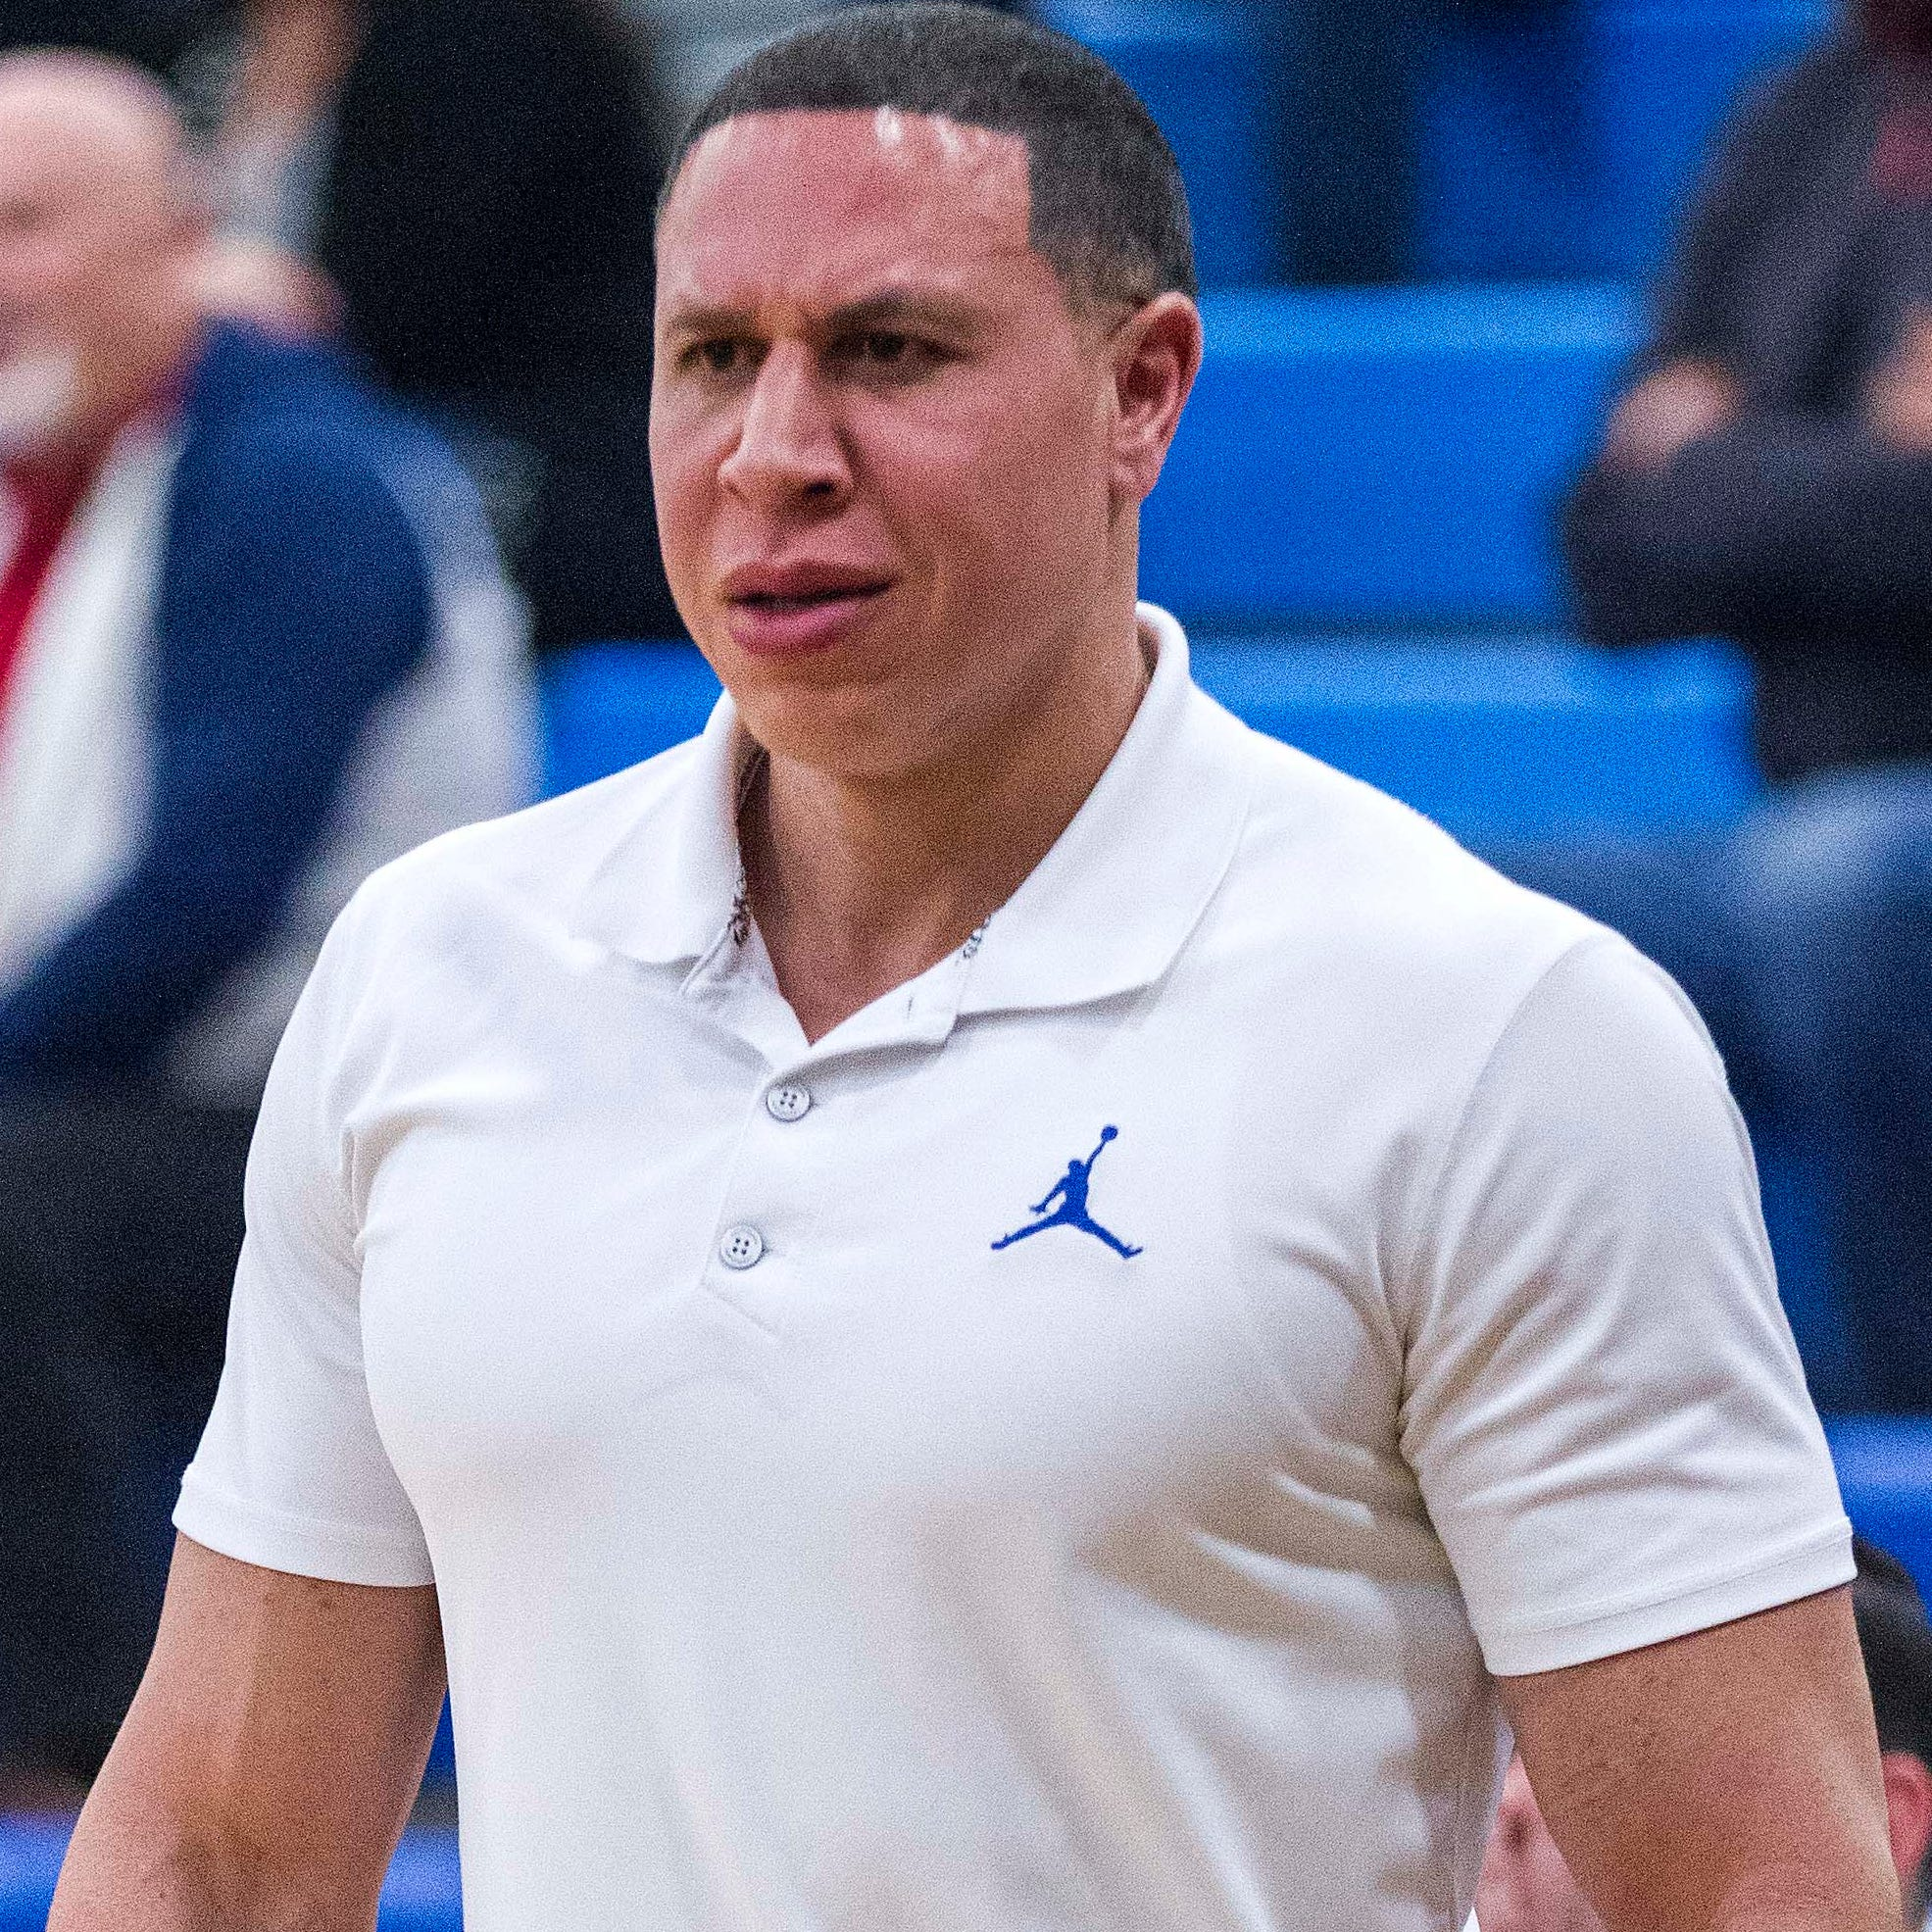 Emails indicate Mike Bibby not ousted as coach until after media got wind of sex-abuse allegation